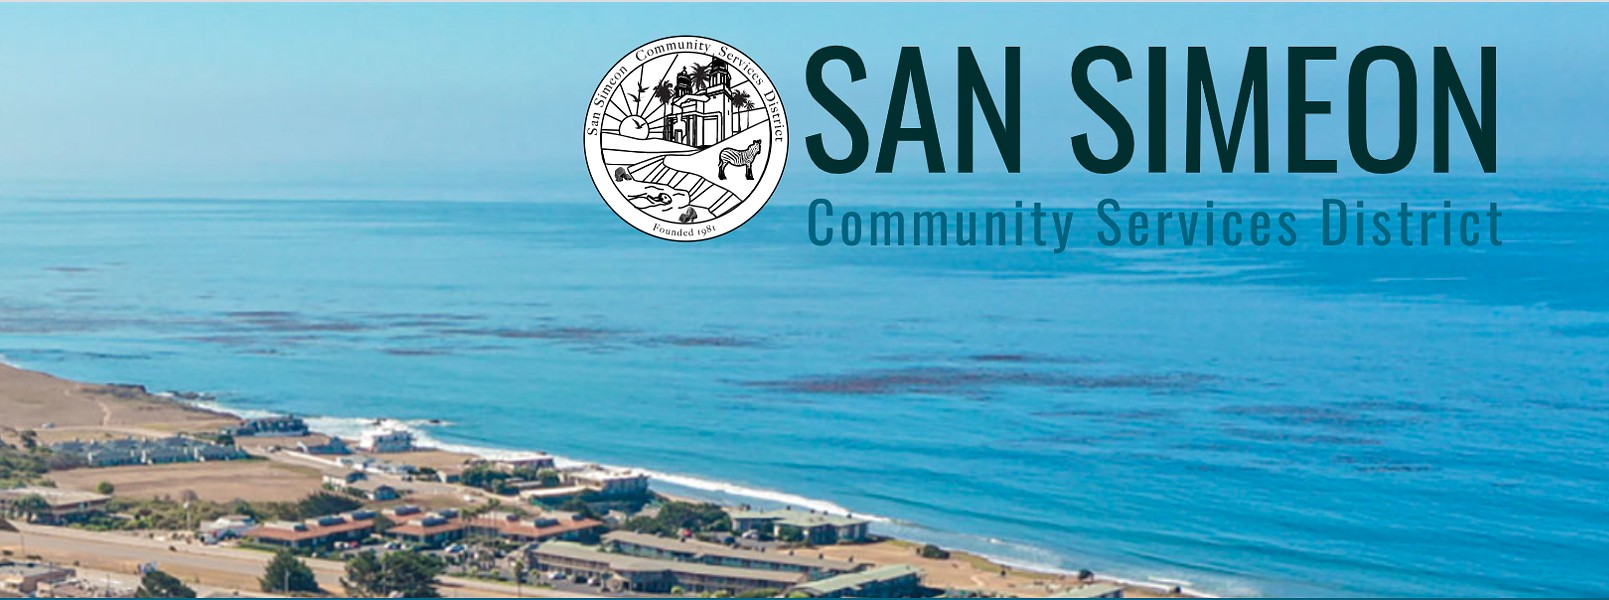 ACCIDENTAL MISINFORMATION The SLO County District Attorney's Office slapped the San Simeon Community Services District with a Brown Act violation notice for failing to provide public access to its March 2020 special meeting. - PHOTO COURTESY OF THE SAN SIMEON COMMUNITY SERVICES DISTRICT WEBSITE